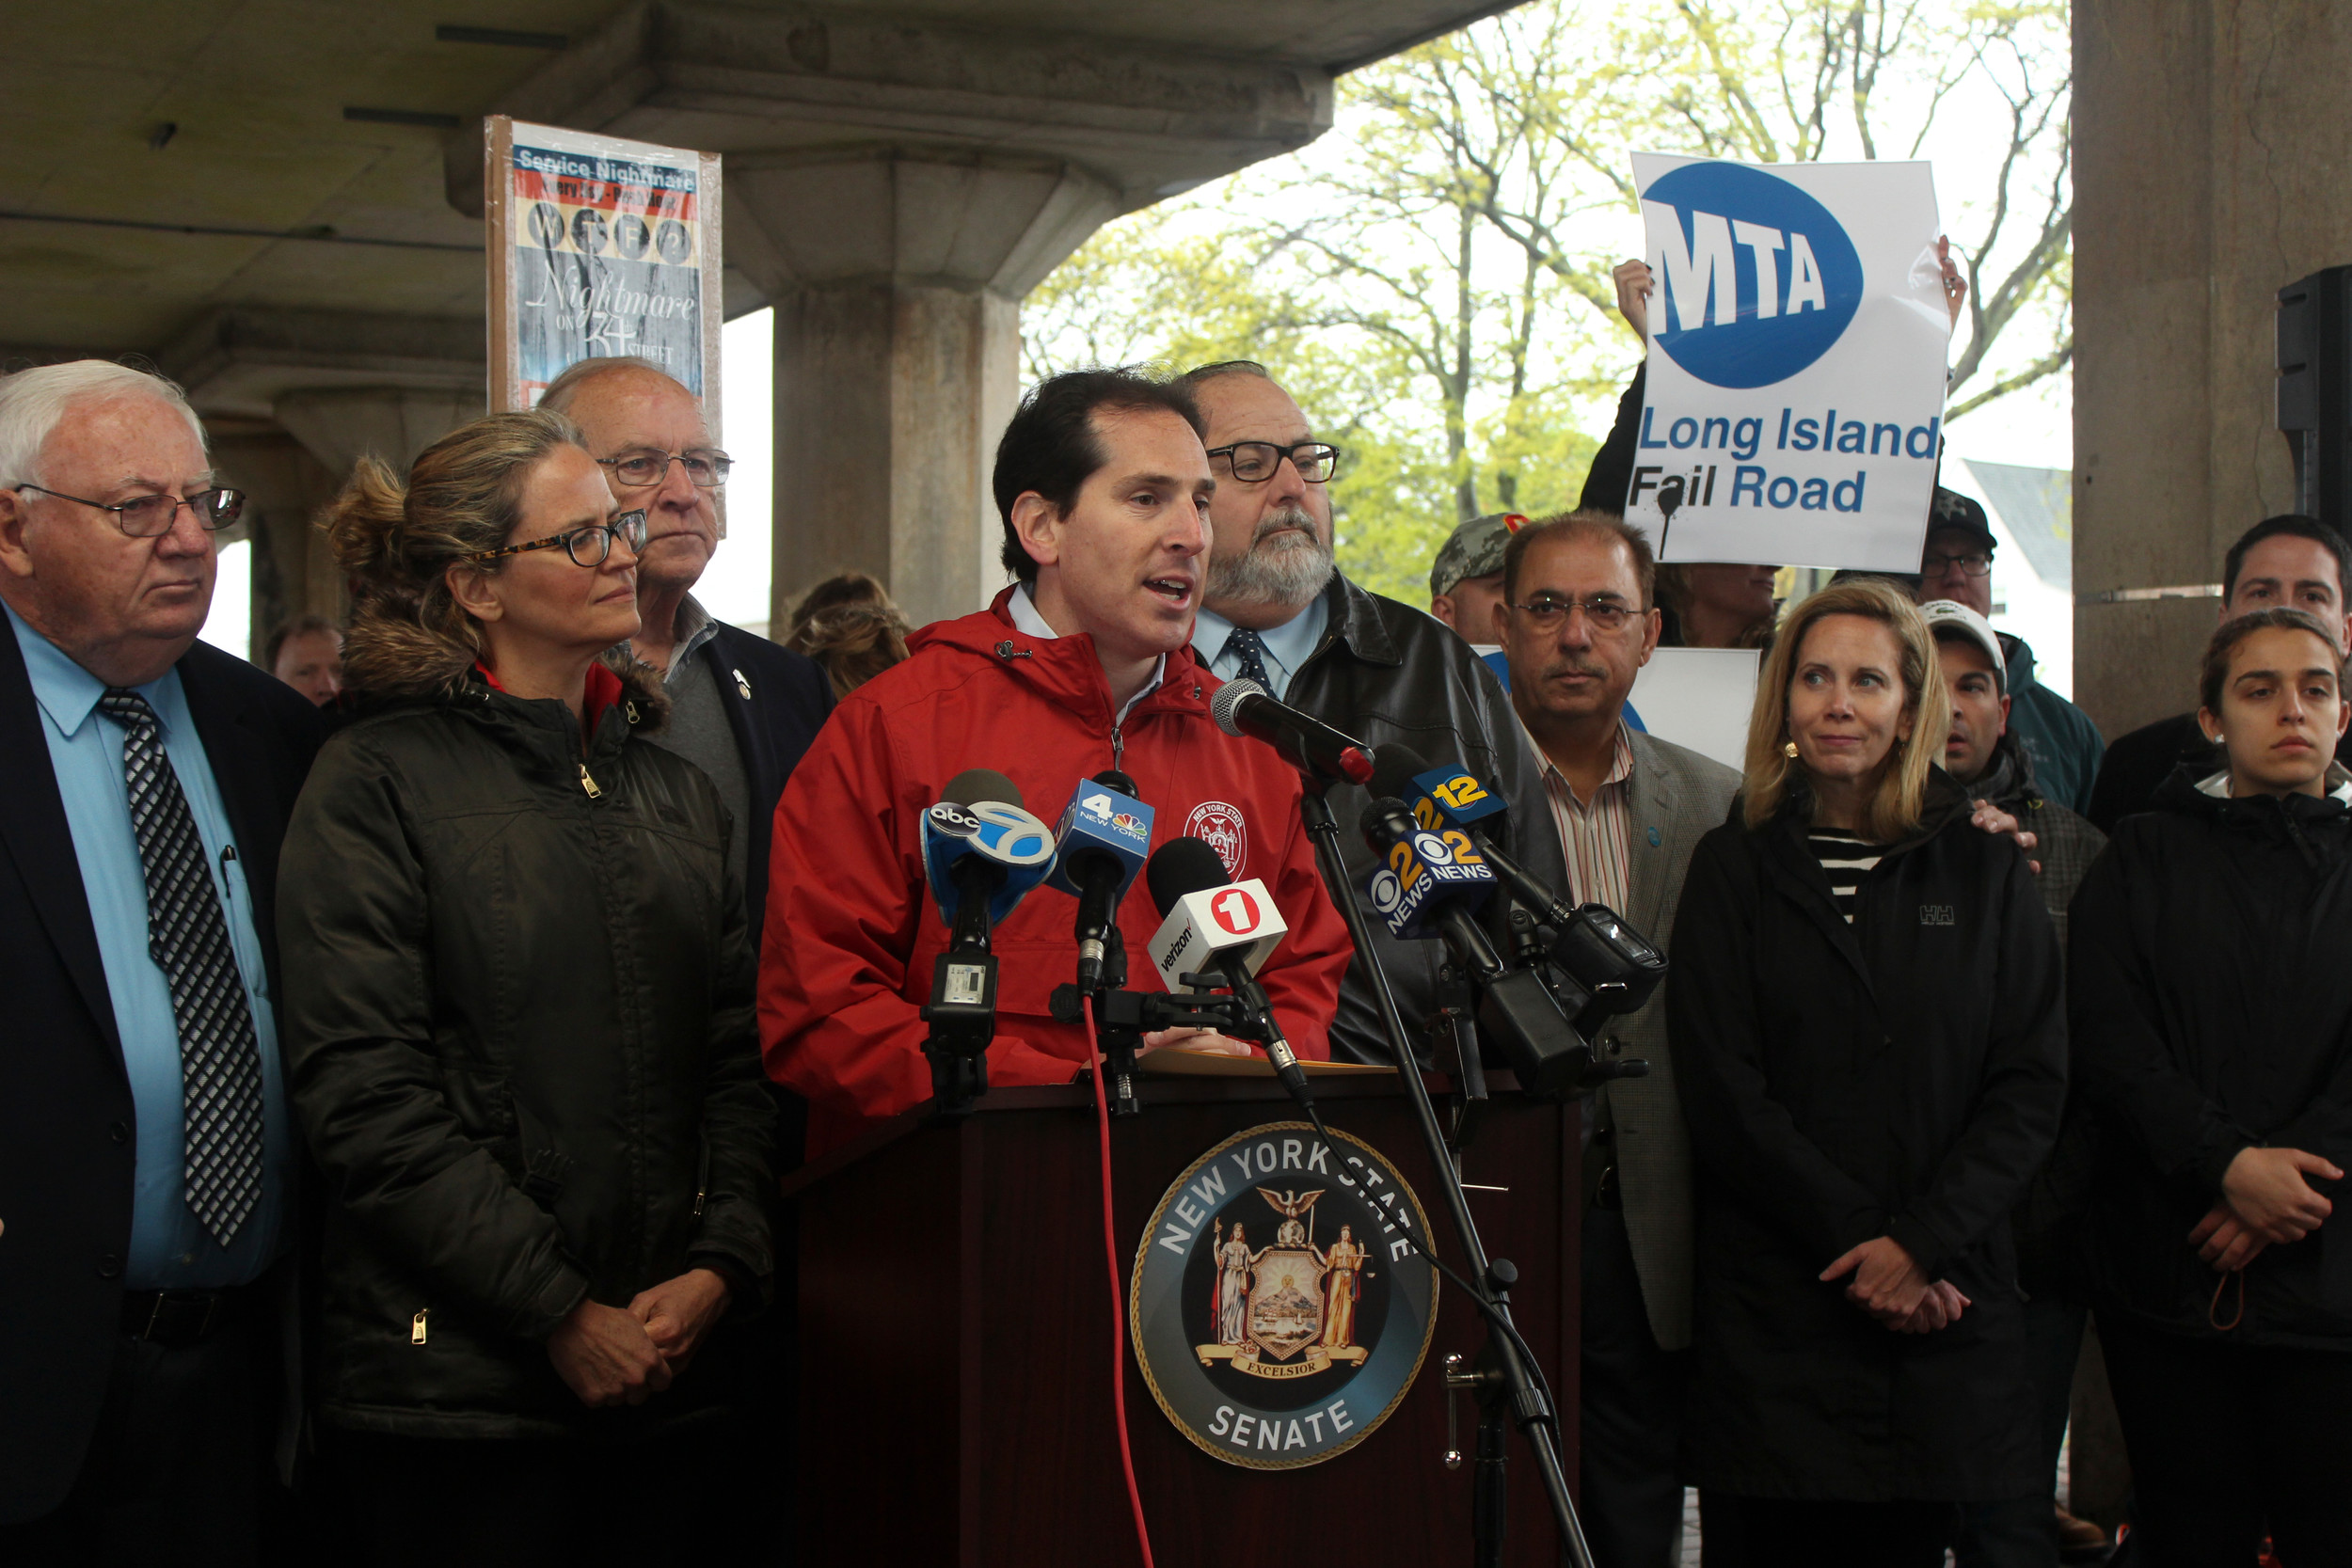 State Senator Todd Kaminsky, center, flanked by State Senator John Brooks, left, County Legislator Laura Curan, Assemblyman David McDonough, Rockville Centre Mayor Francis X. Murray and Laura Gillen, a Rockville Centre-based attorney currently running for Town of Hempstead supervisor. Kaminsky held the rally for the purpose of demanding the ouster of Amtrak as the owner of Pennsylvania Station.